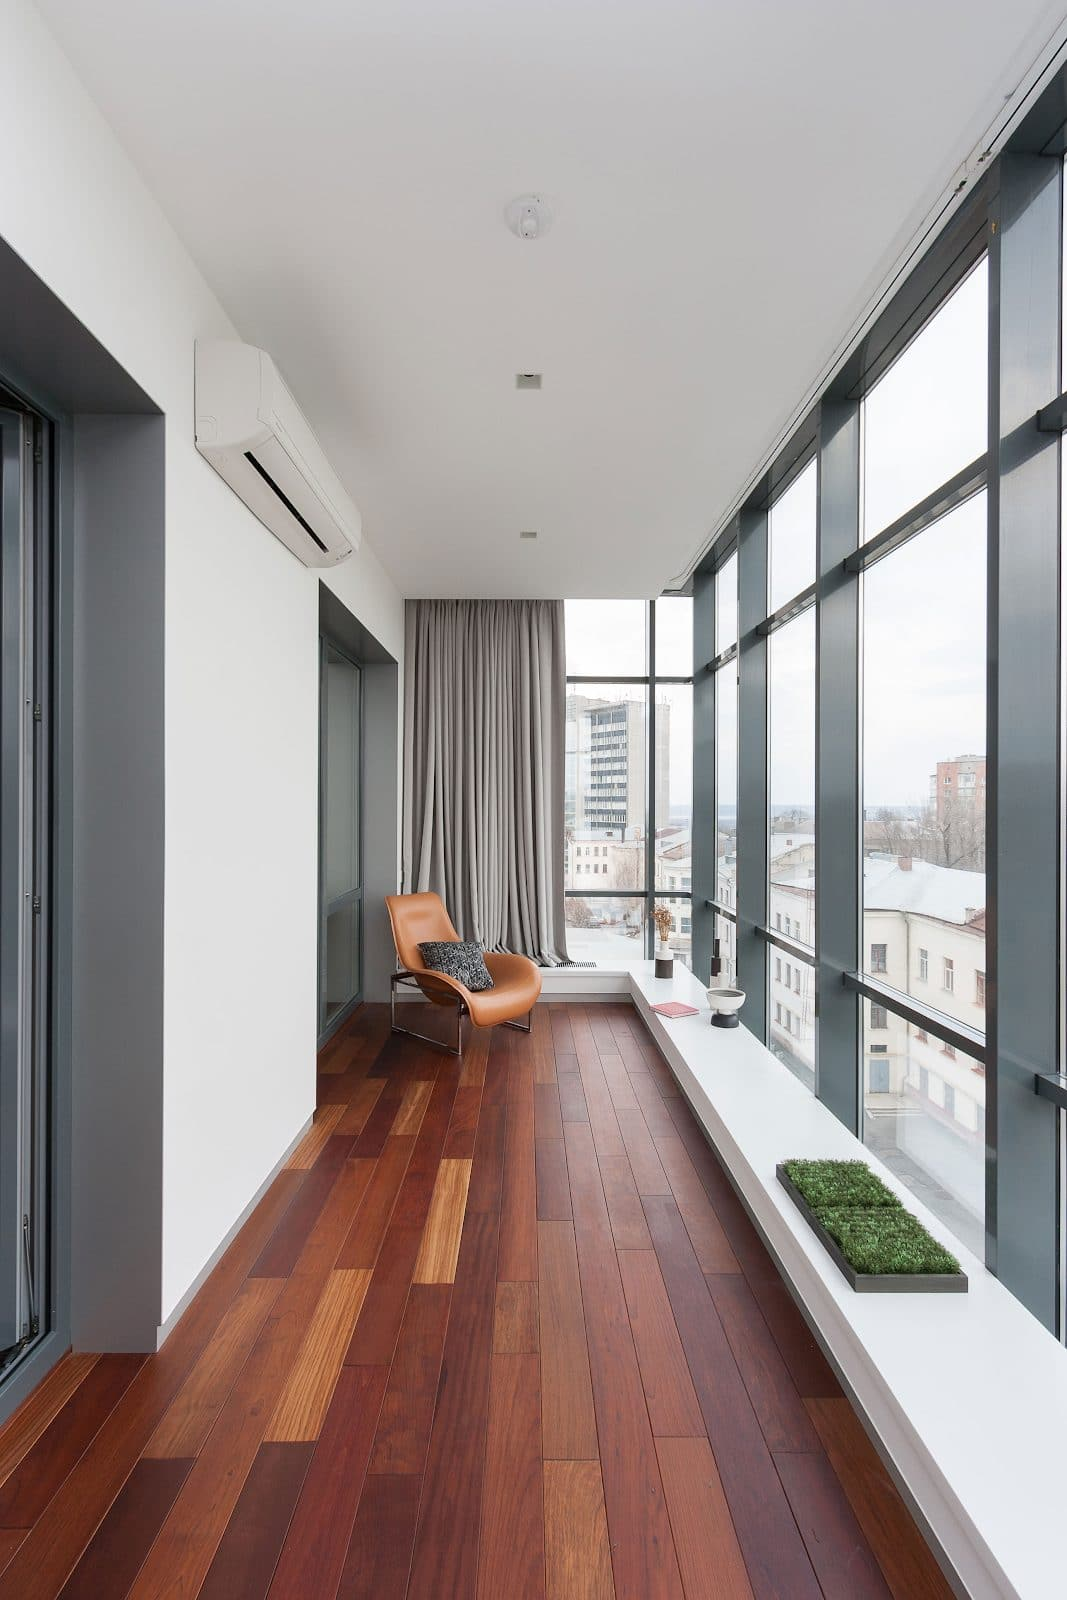 These Glass Balcony Renovations Will Add a New Beautiful Space to Your Home